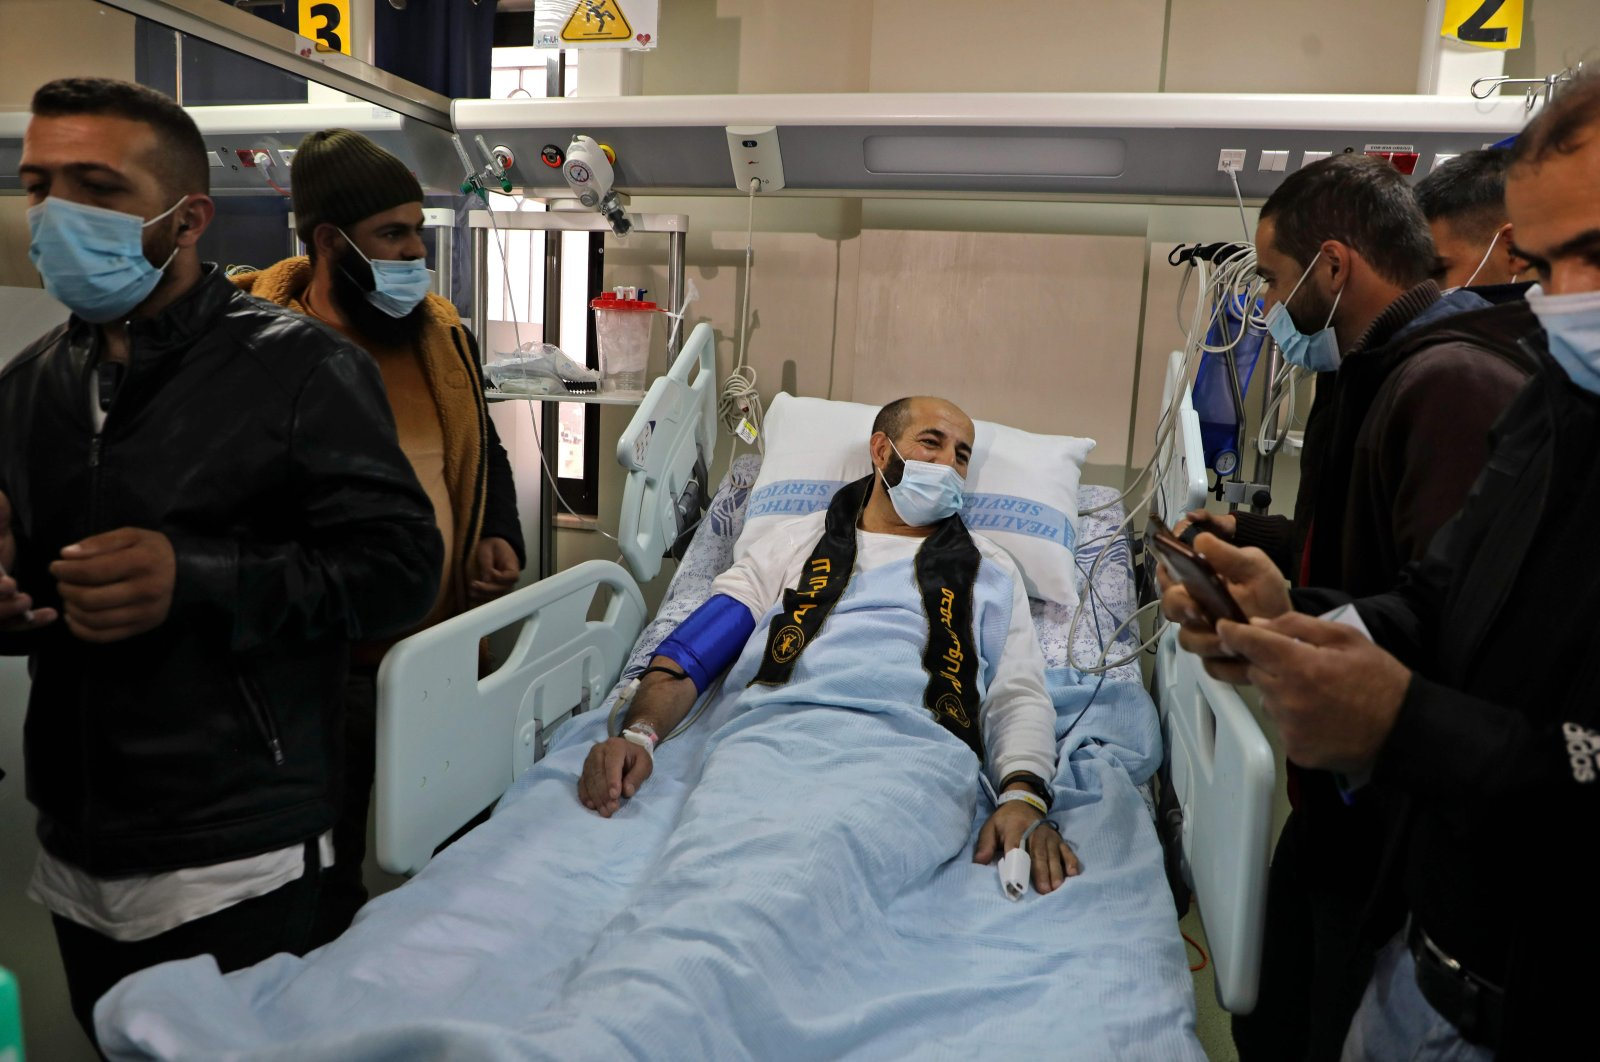 Palestinian detainee Maher al-Akhras arrives at Al-Najah Hospital in the West Bank city of Nablus following his release by Israeli authorities, Palestine, Nov. 26, 2020. (AFP Photo)